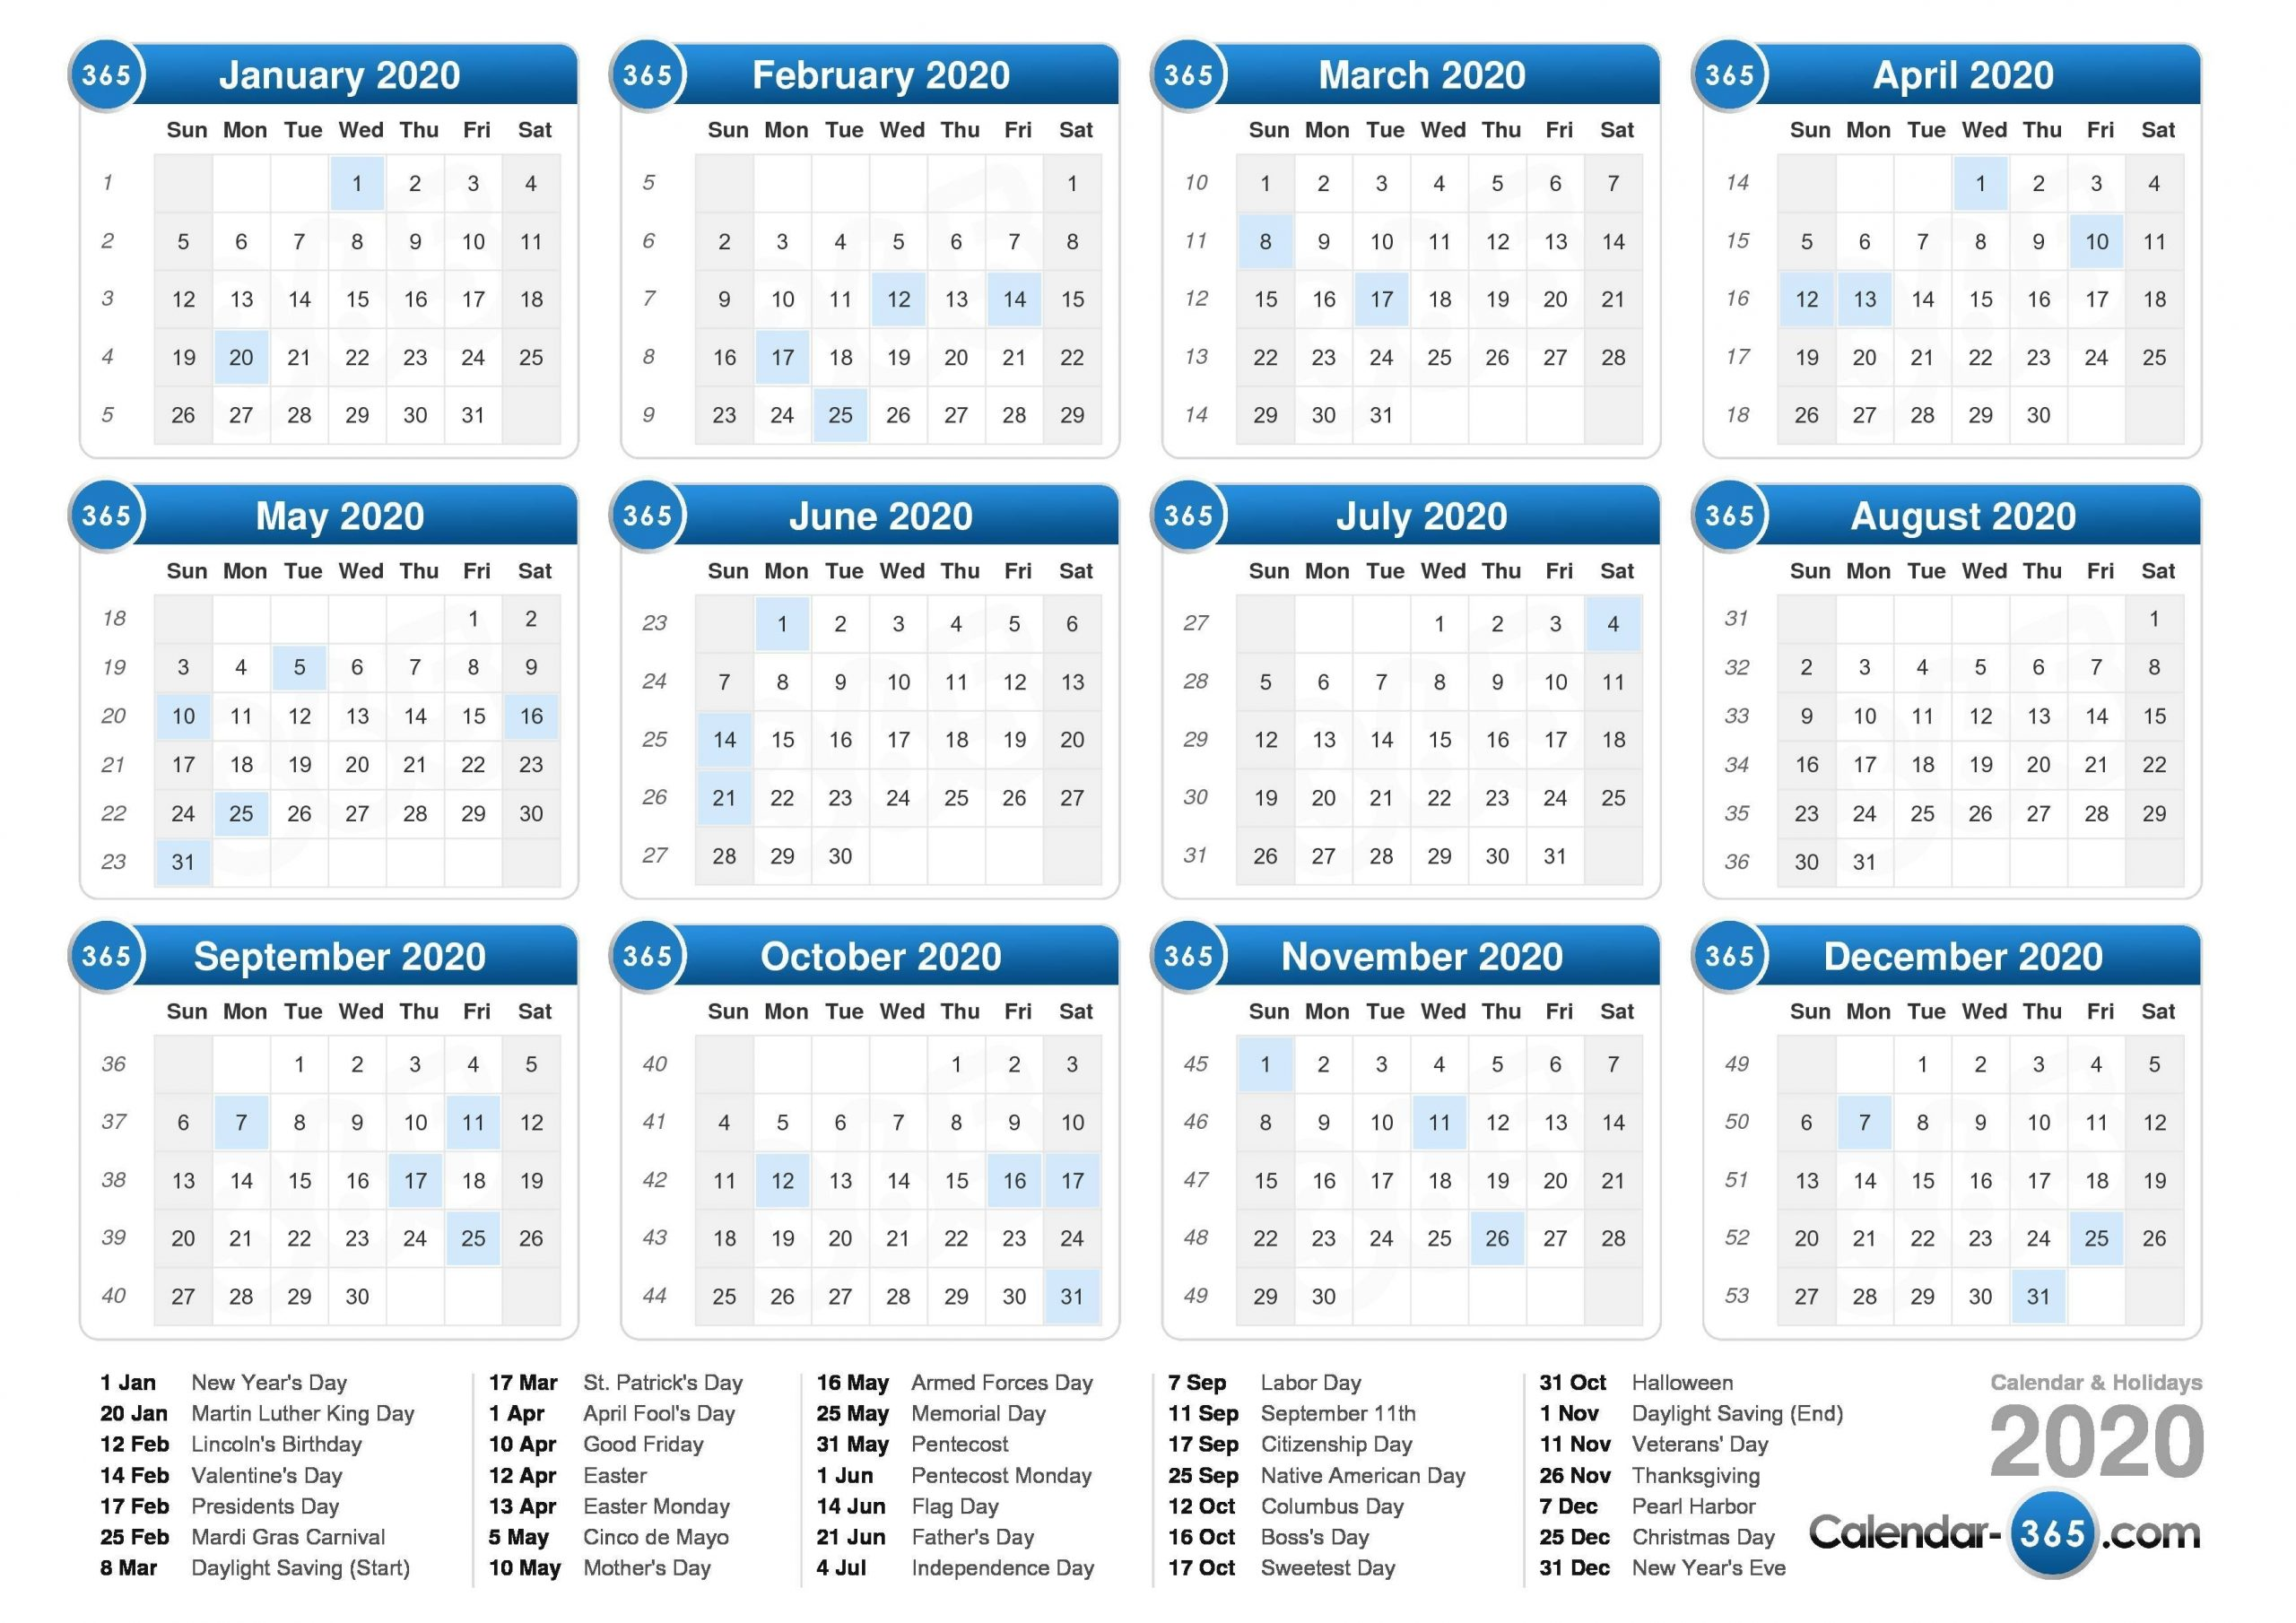 2020 Calendar with Calendar For 2020 Week Wise